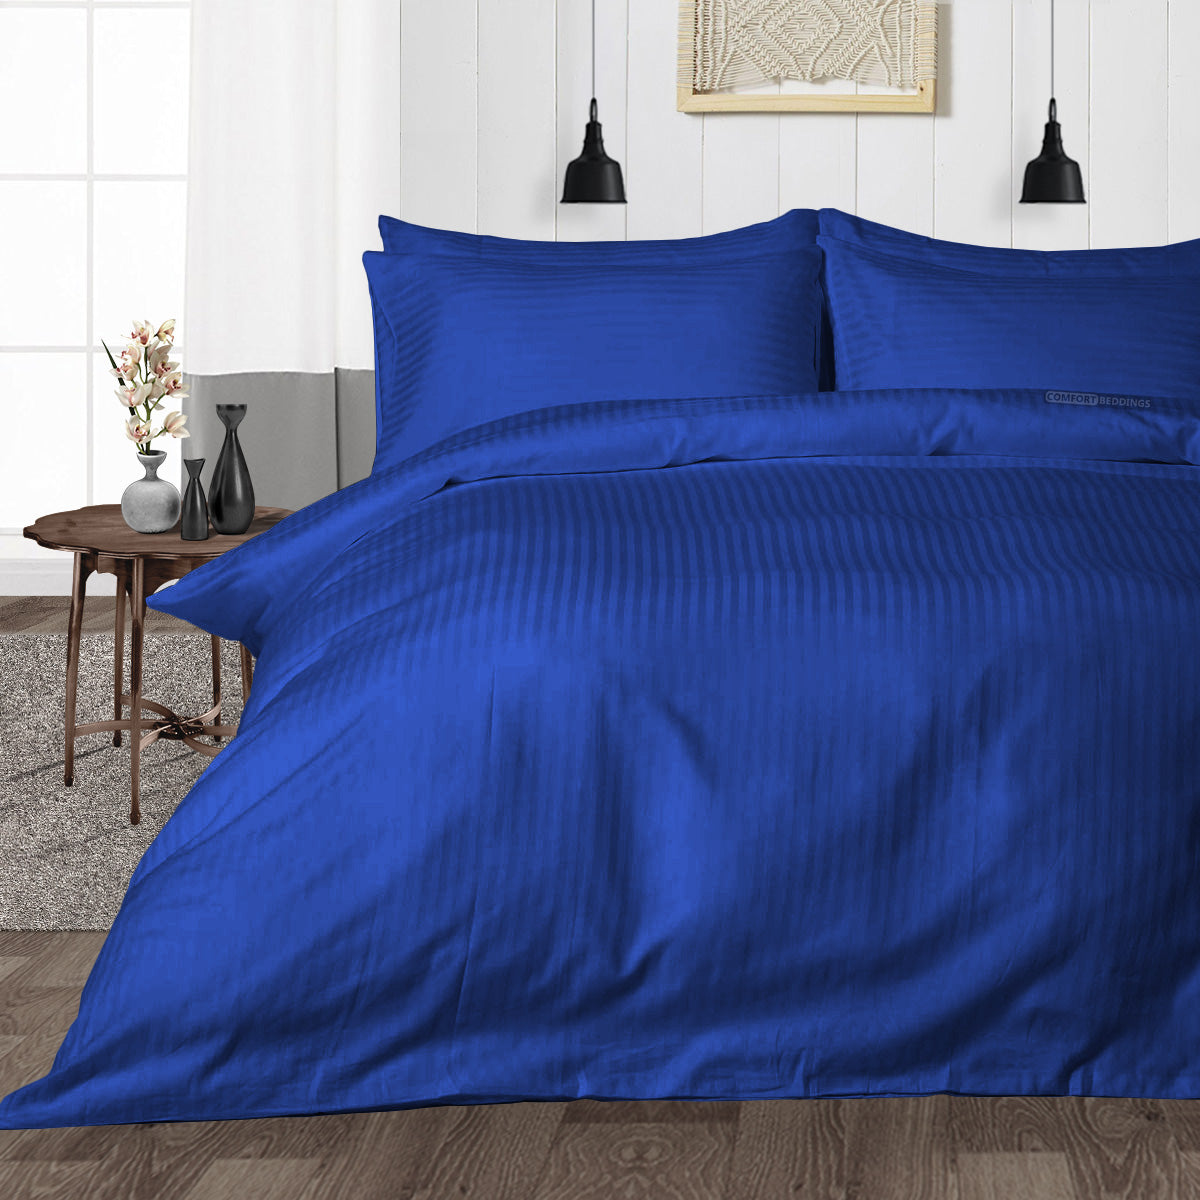 Luxurious Royal Blue Striped Duvet Cover - 600TC